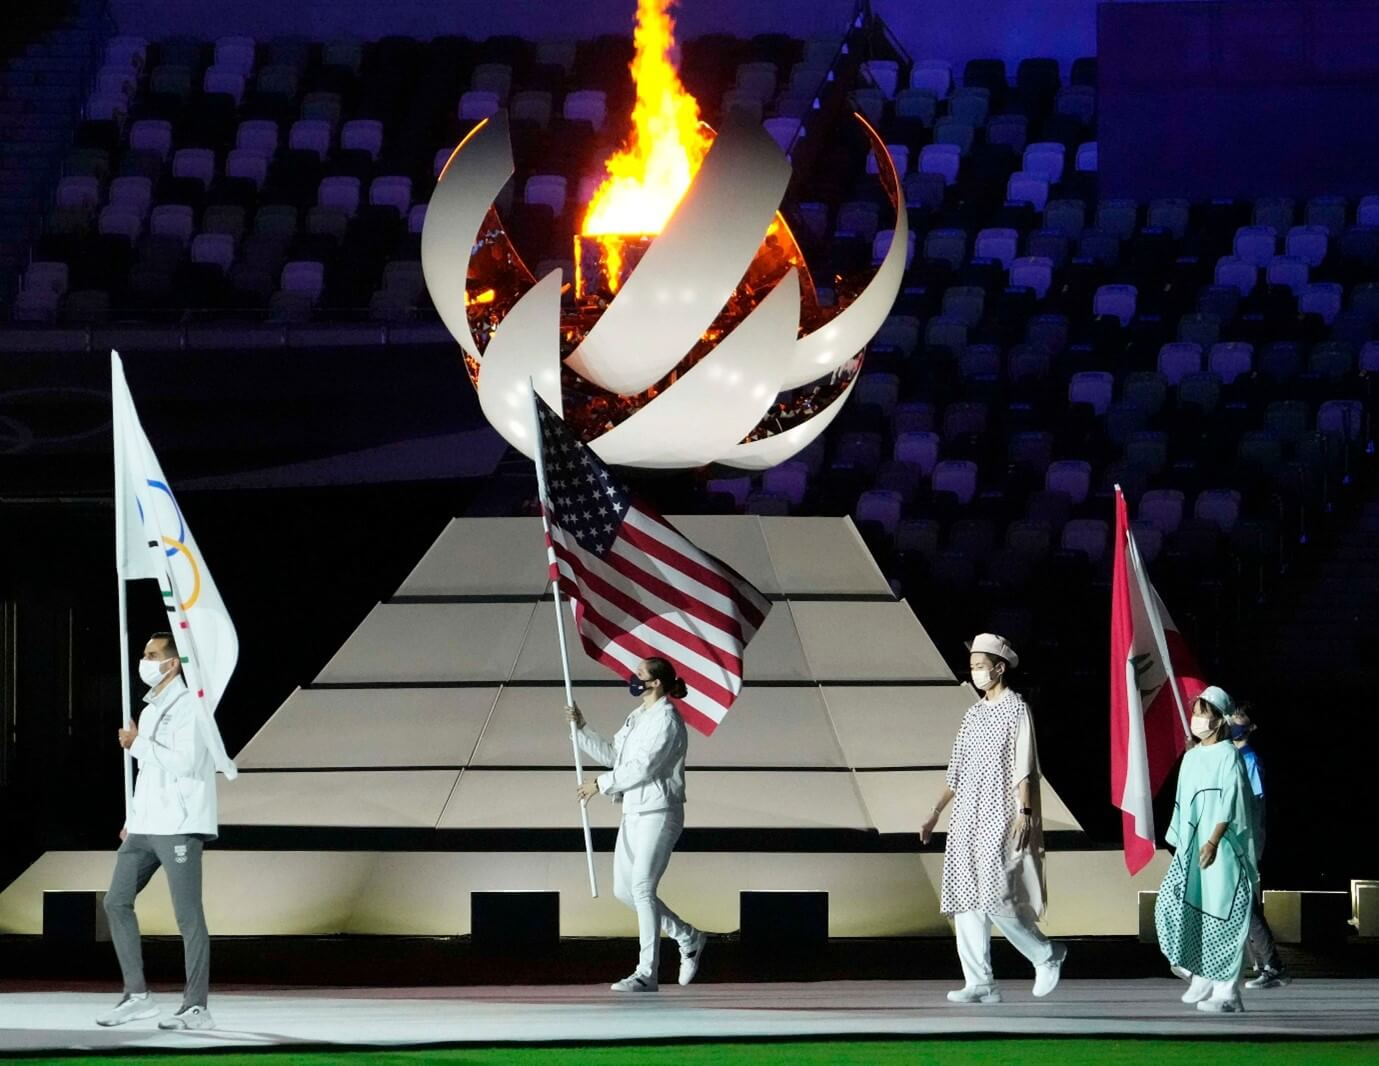 Olympics closing ceremony with four figures in white in front of the Olympic flame. One is holding up the american flag.